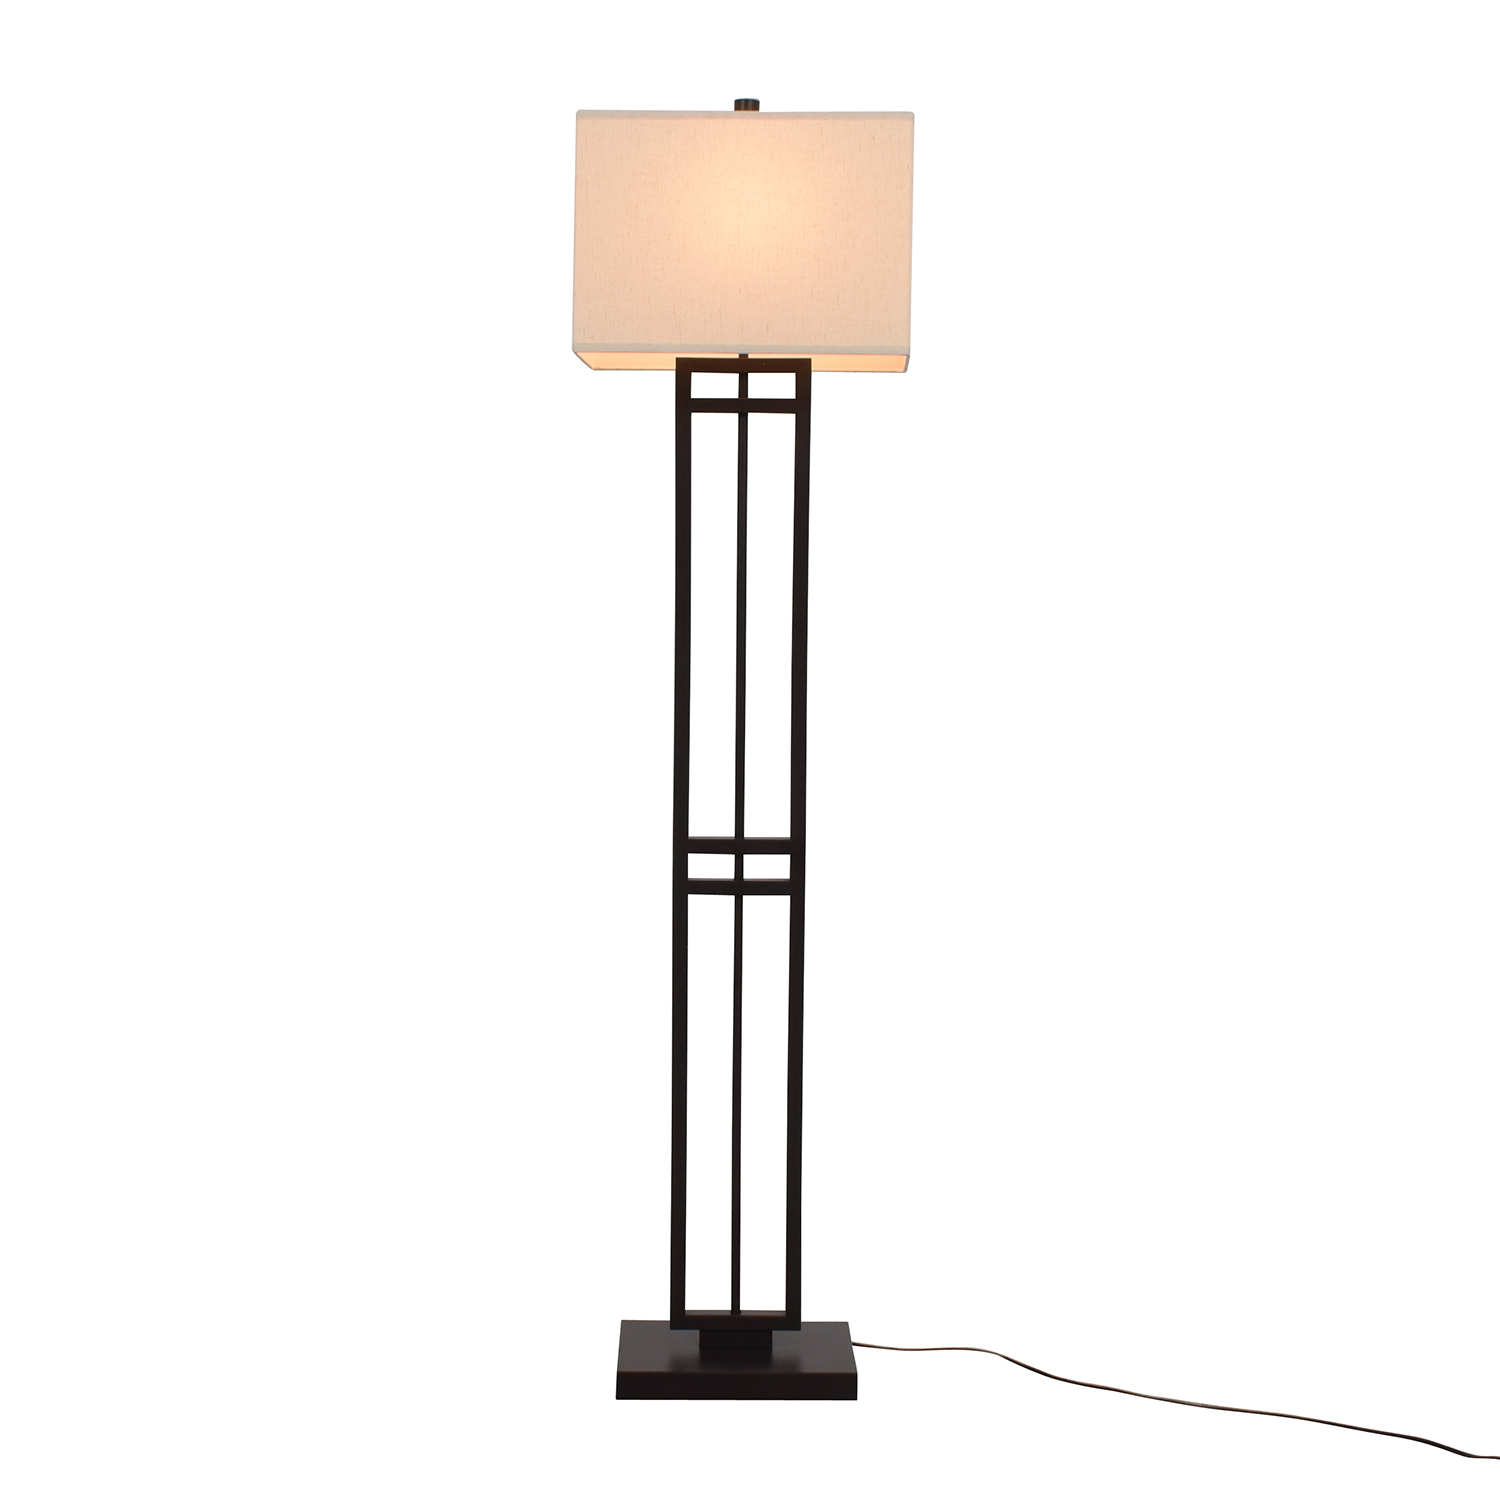 Pacific Coast Lighting Pacific Coast Lighting  Bronze Finish Floor Lamp coupon